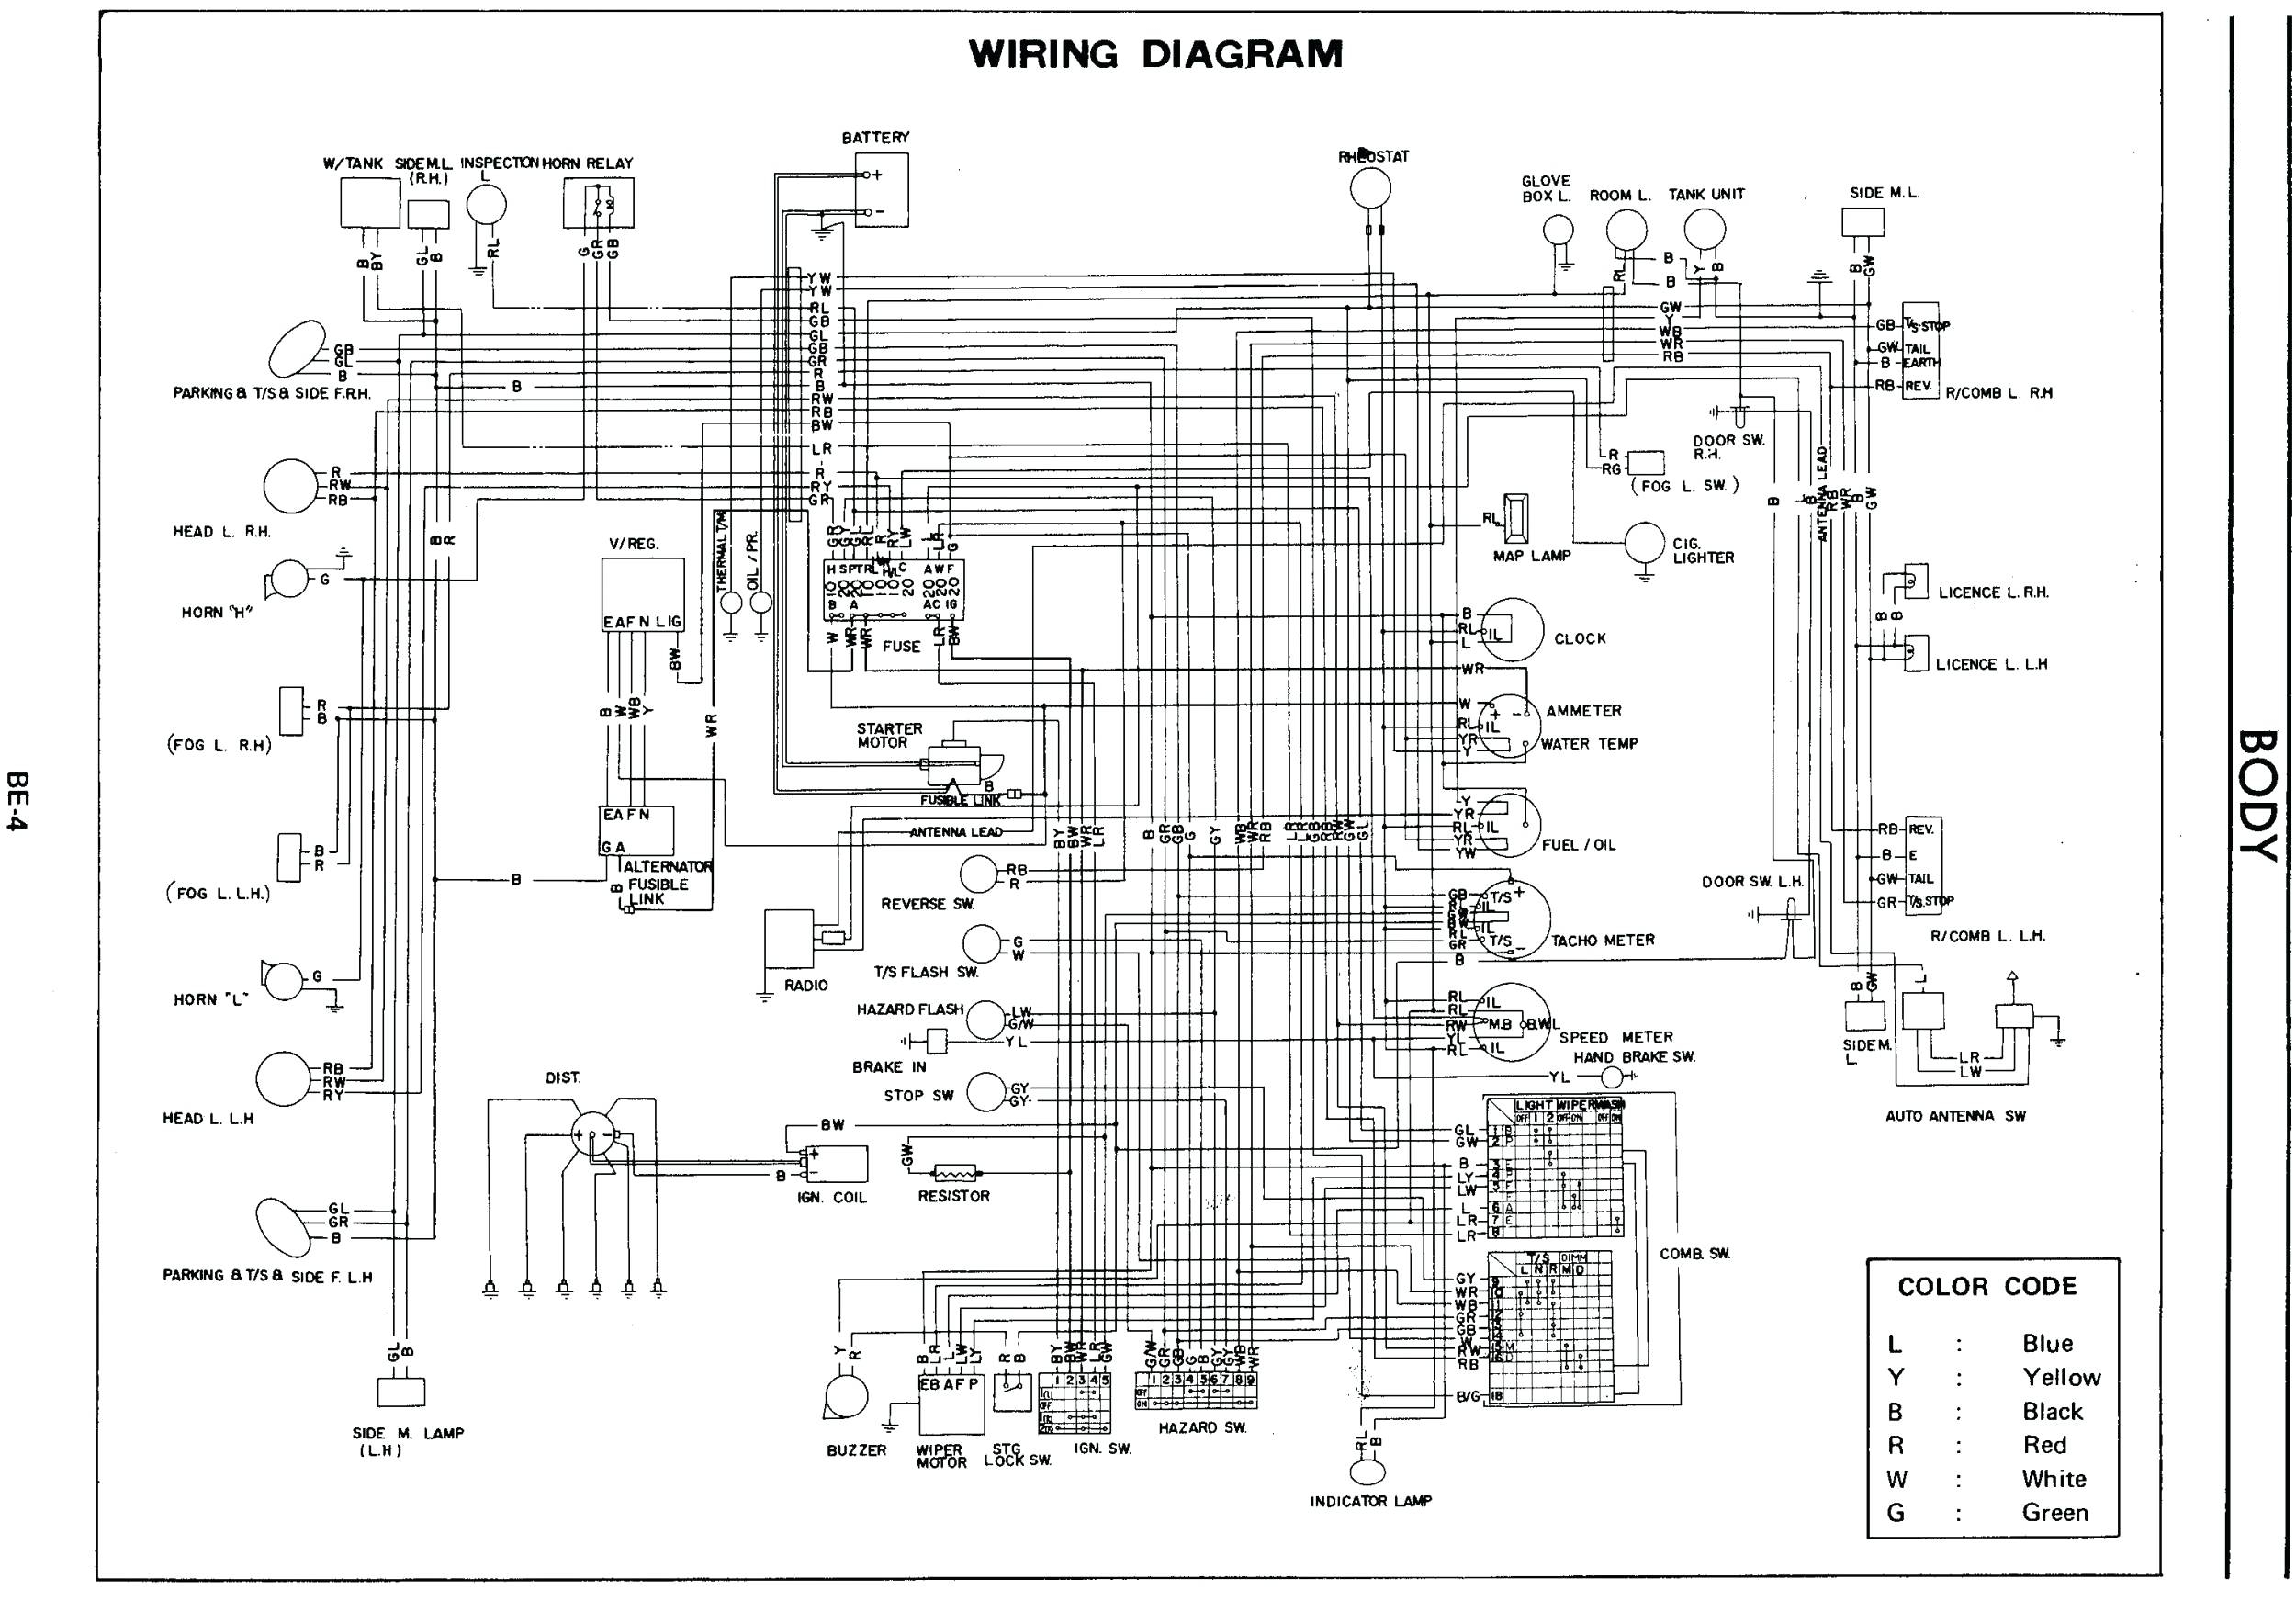 m s2 wiring diagram daily electronical wiring diagram Westerbeke Wiring Diagrams